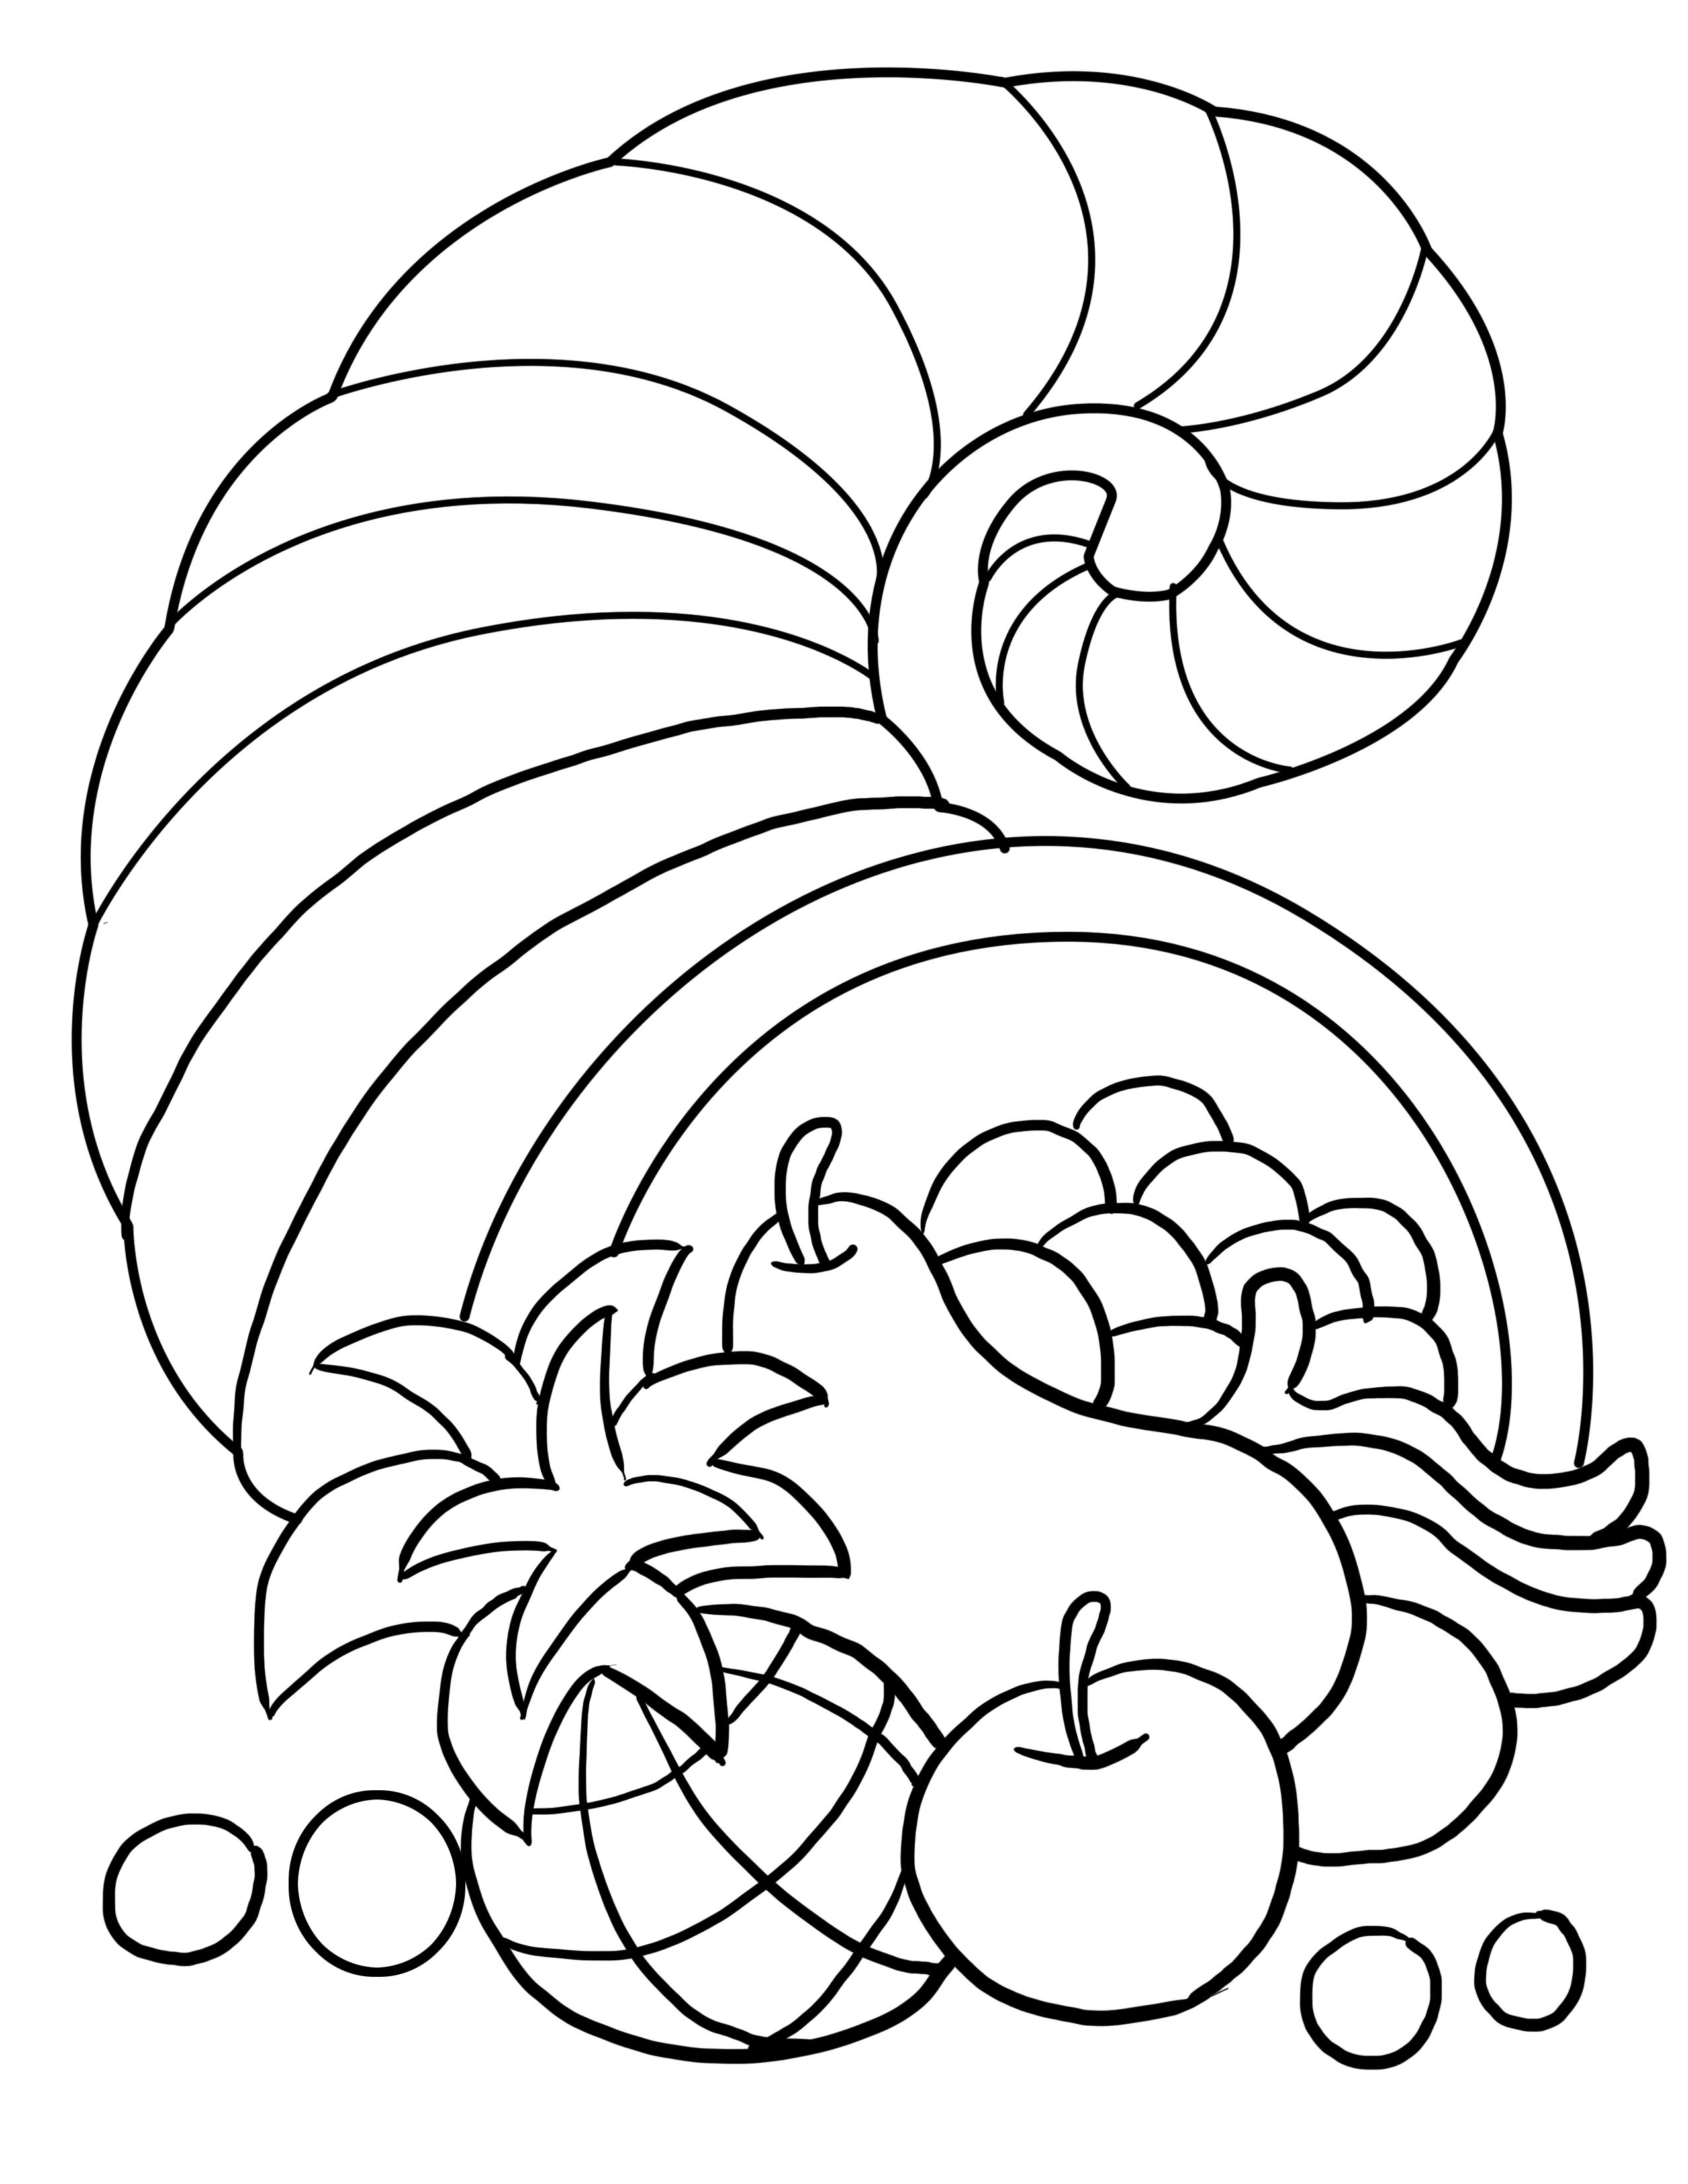 Thanksgiving Coloring Pages | Pinterest | Thanksgiving songs ...